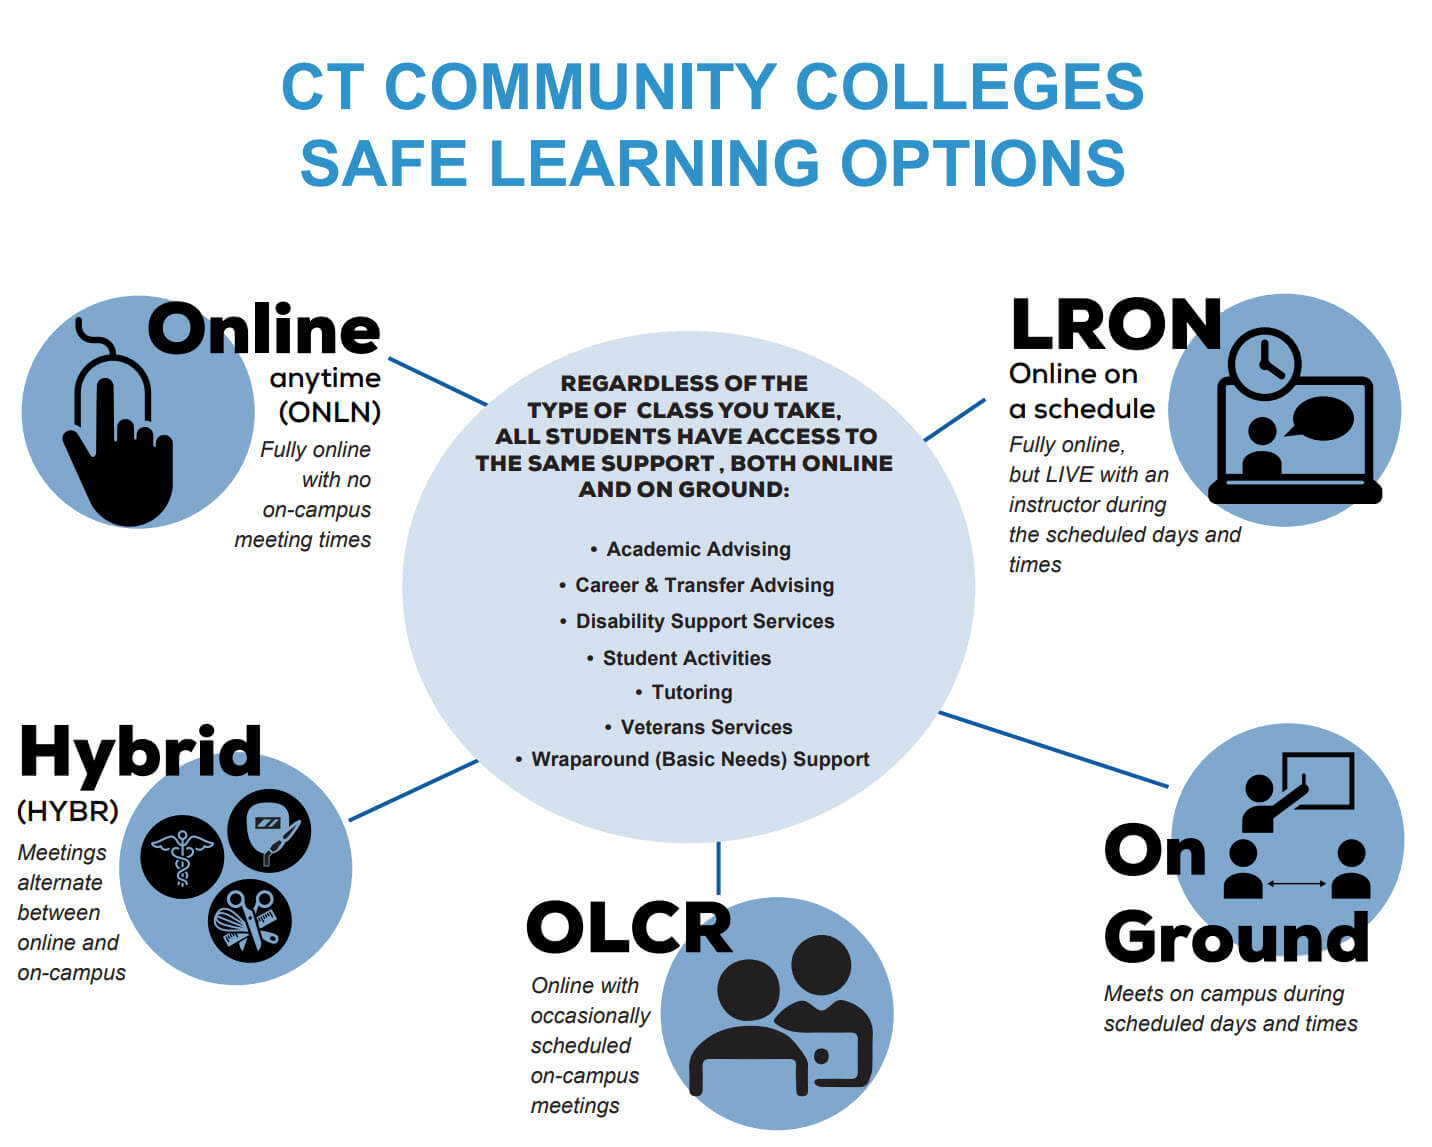 Fall 2021 Safe Learning Options